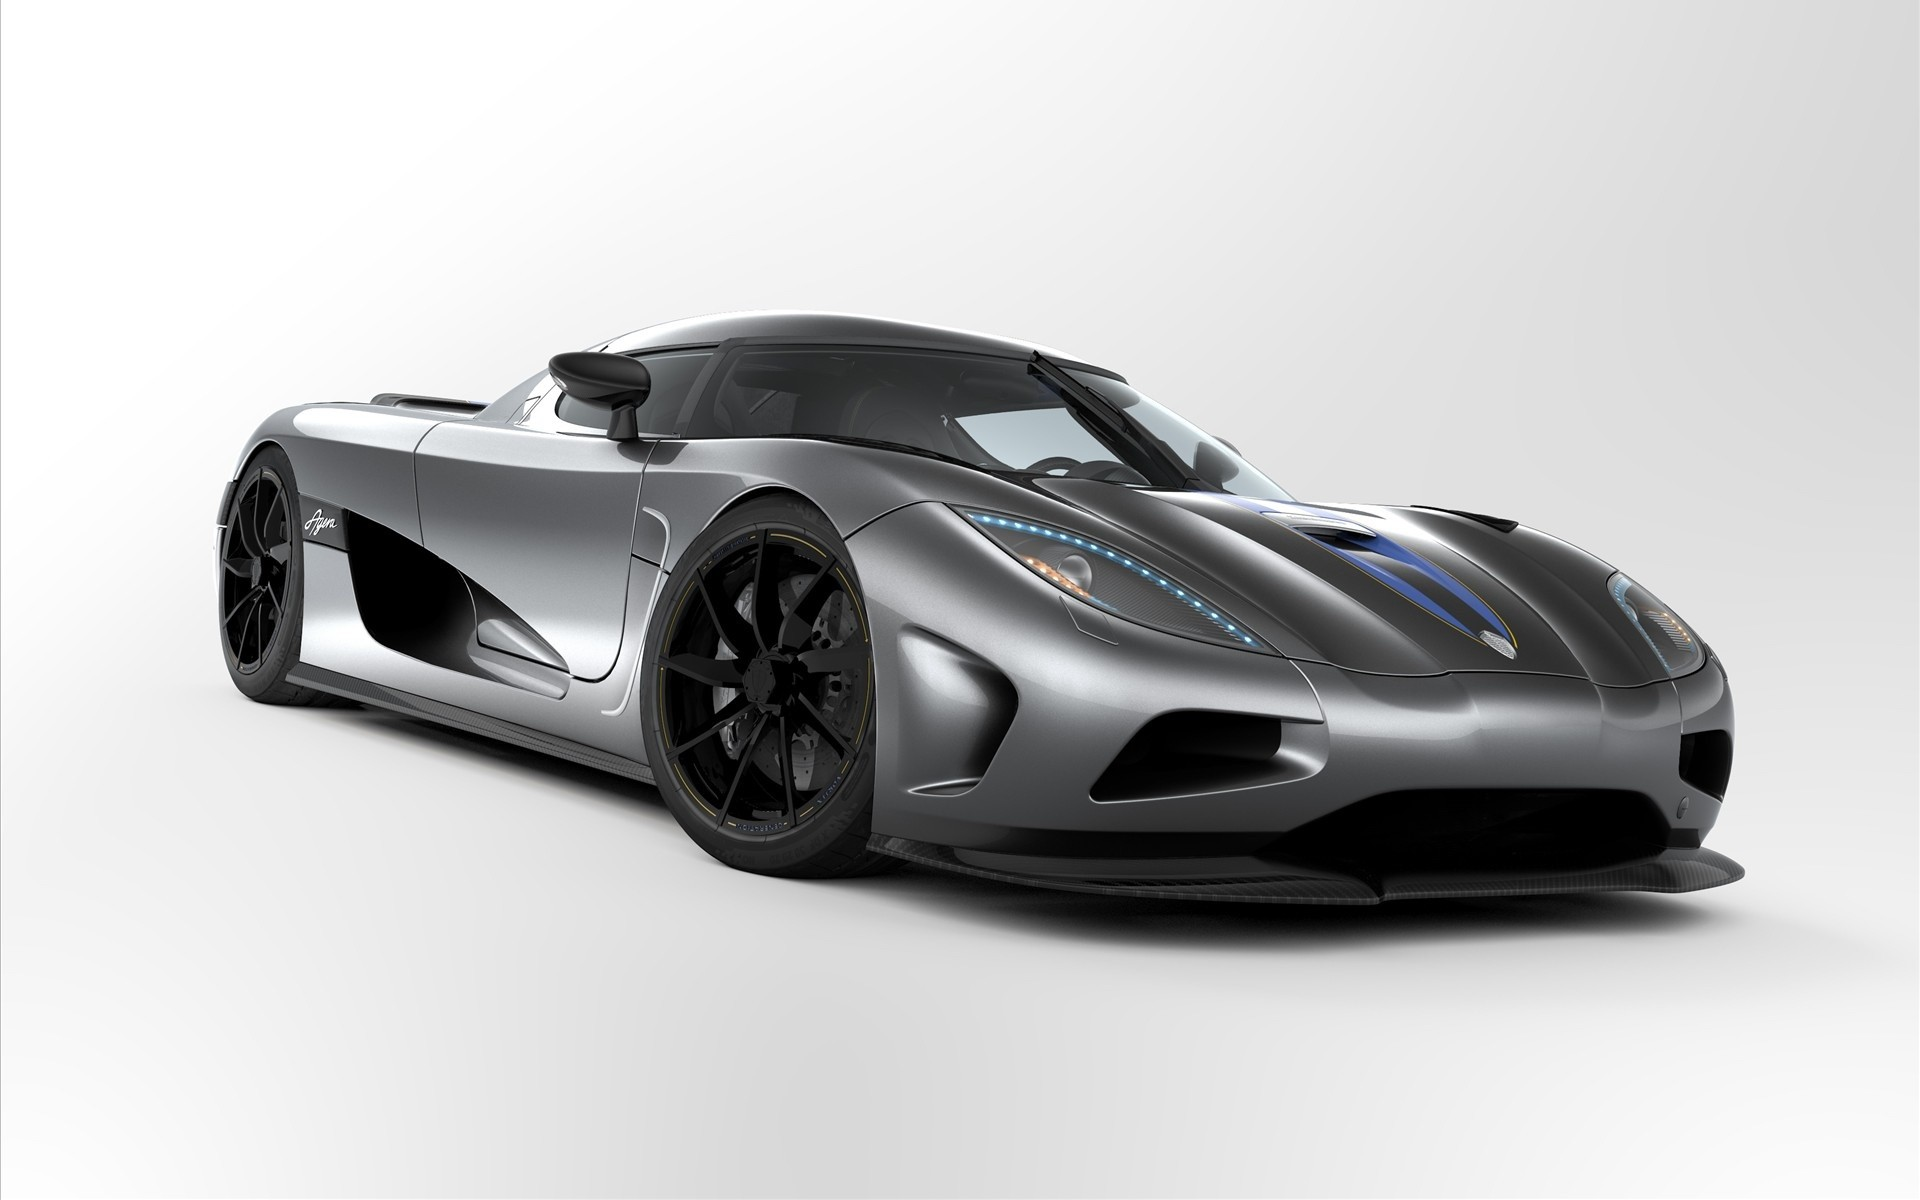 1920x1200 Koenigsegg agera HD (High Definition) Wallpaper/Background, HD Wallpapers  and Backgrounds